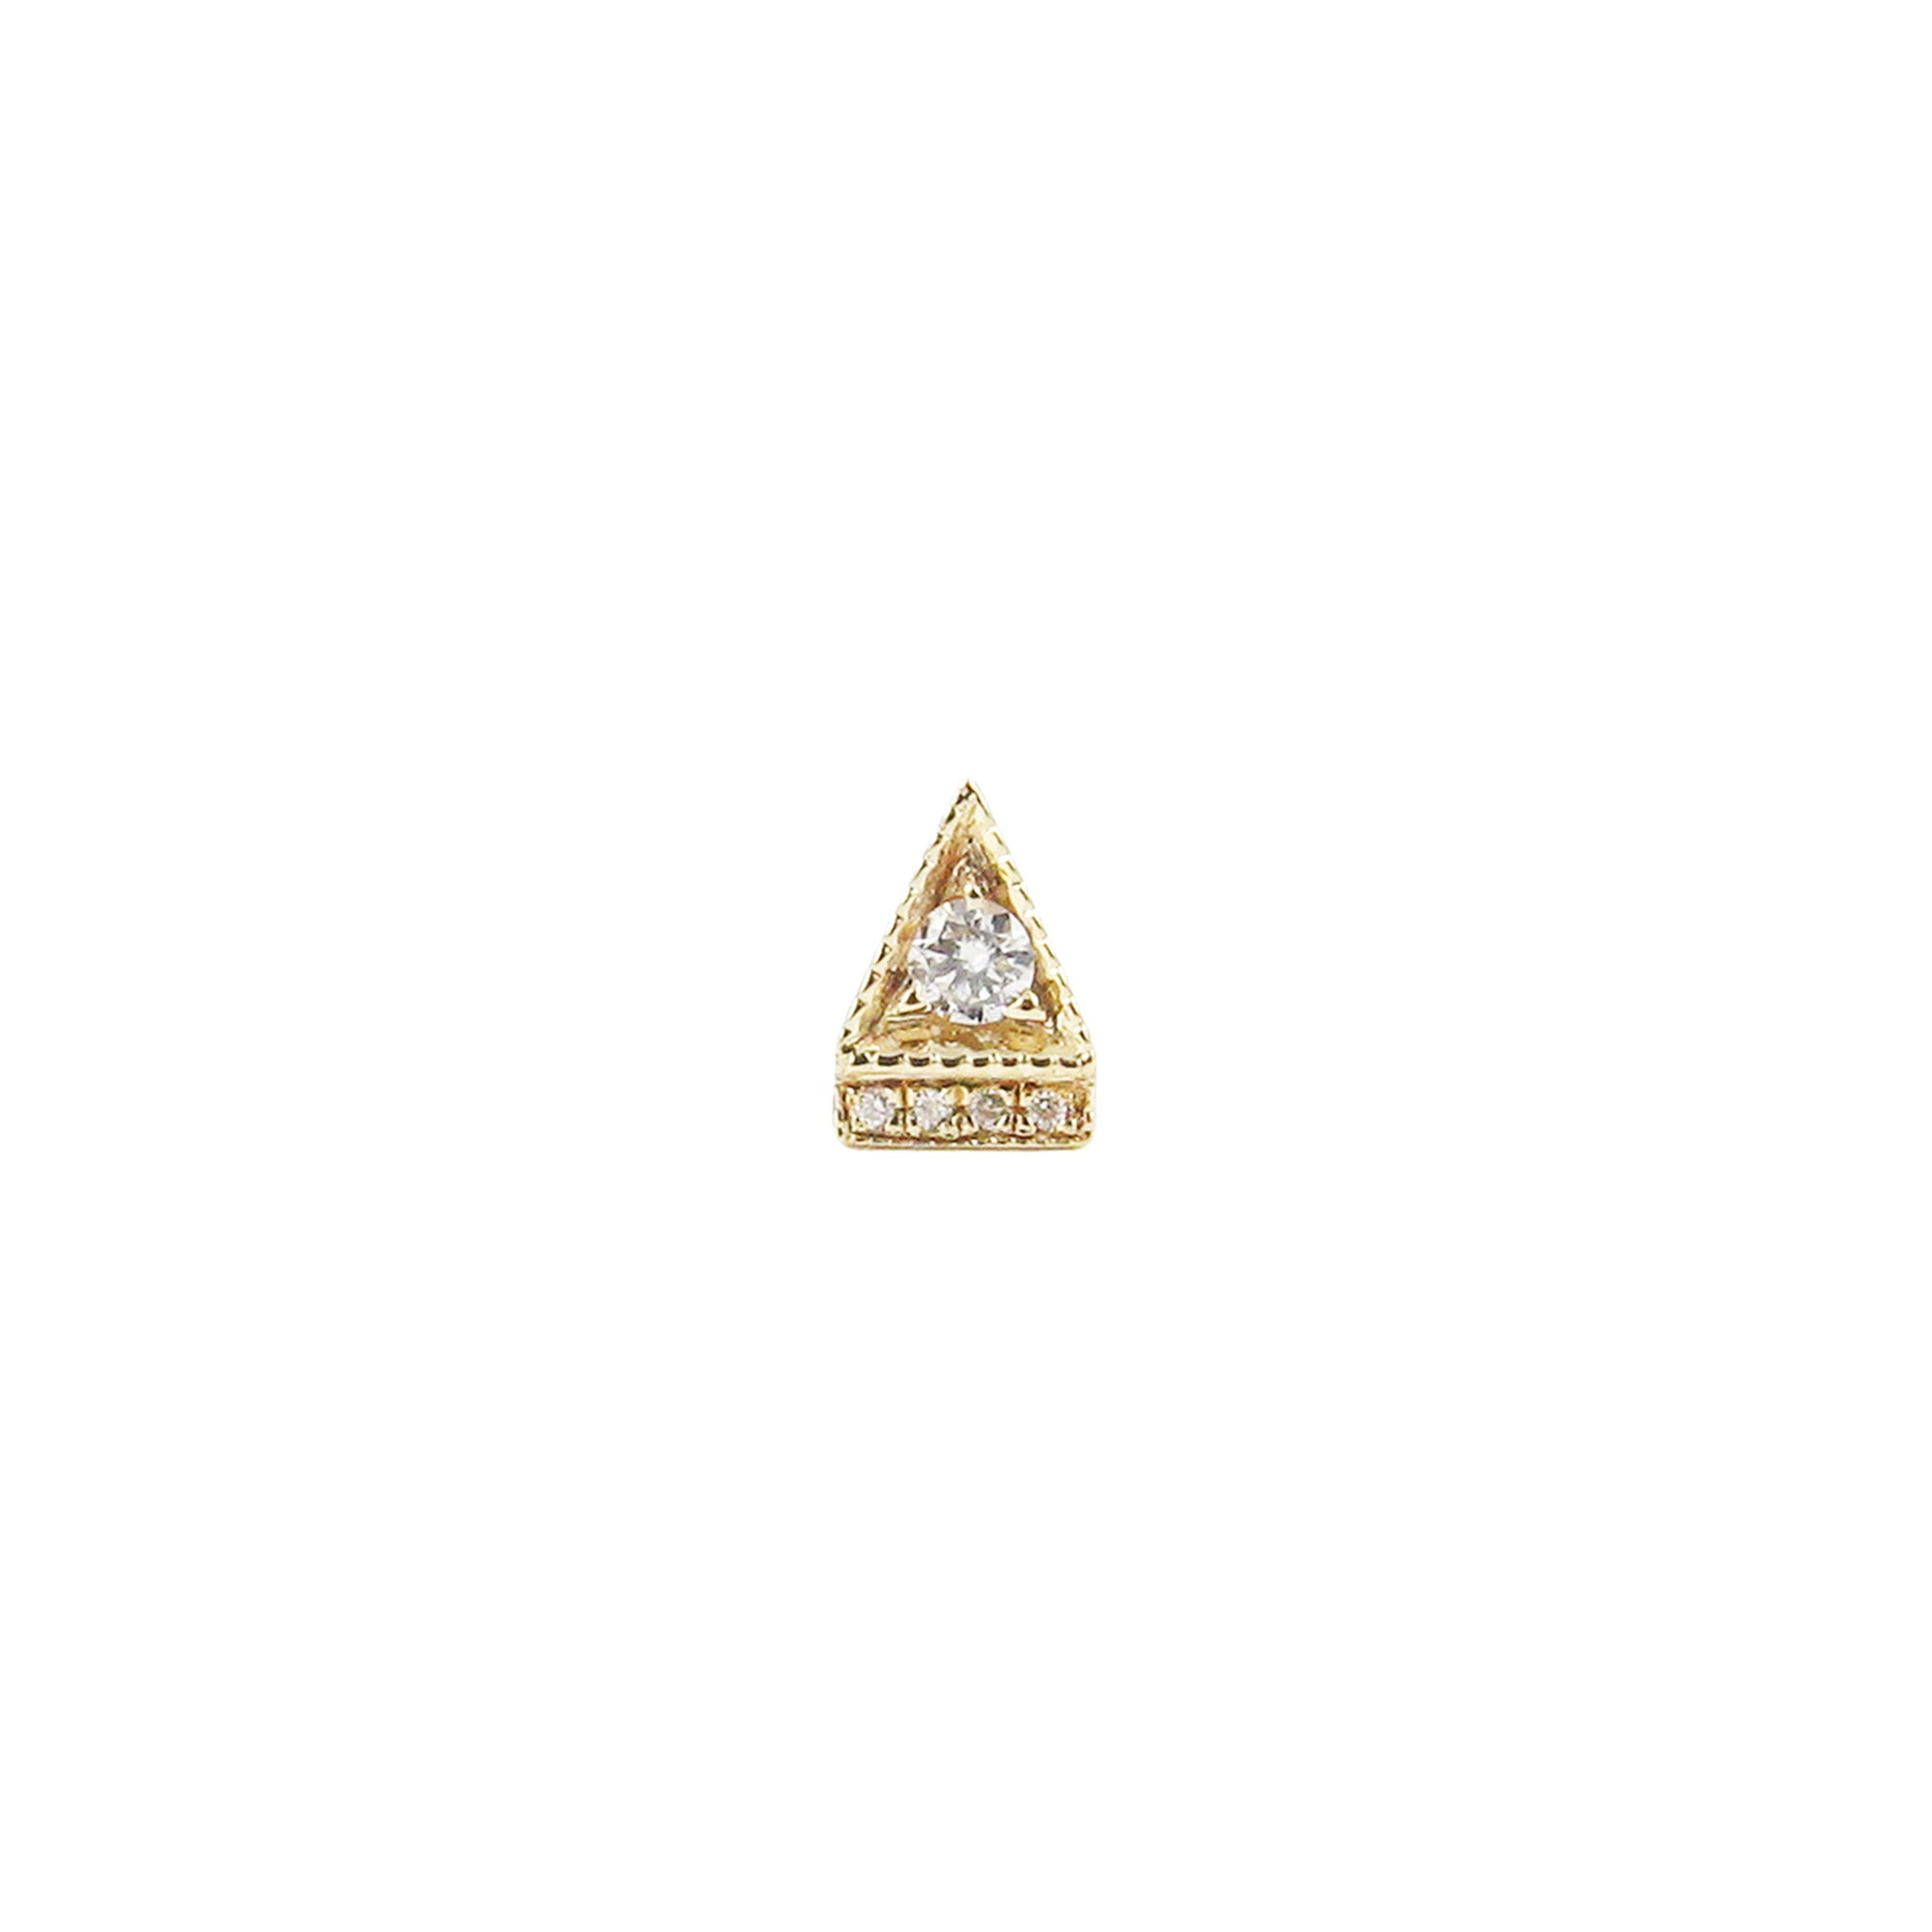 Gold & White Diamond Deco Point Triangle Stud by Jennie Kwon for Broken English Jewelry